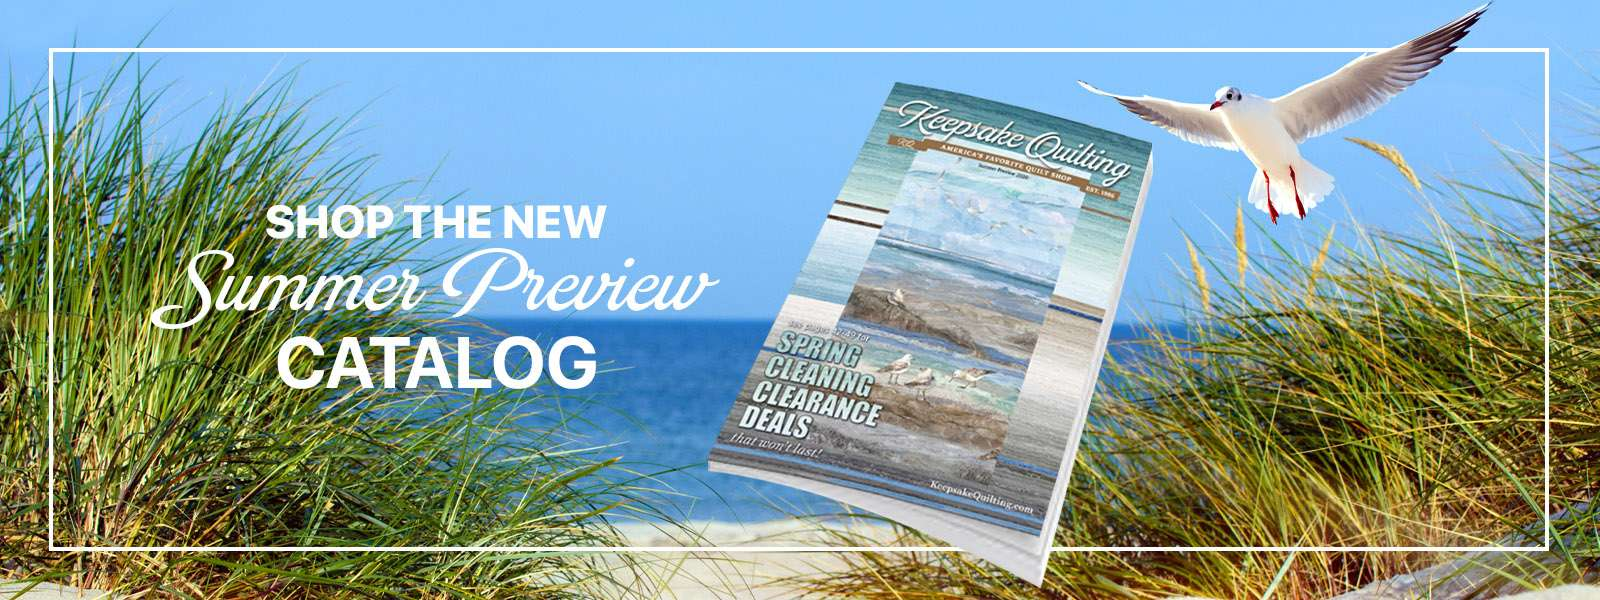 Shop the New Summer Preview Catalog